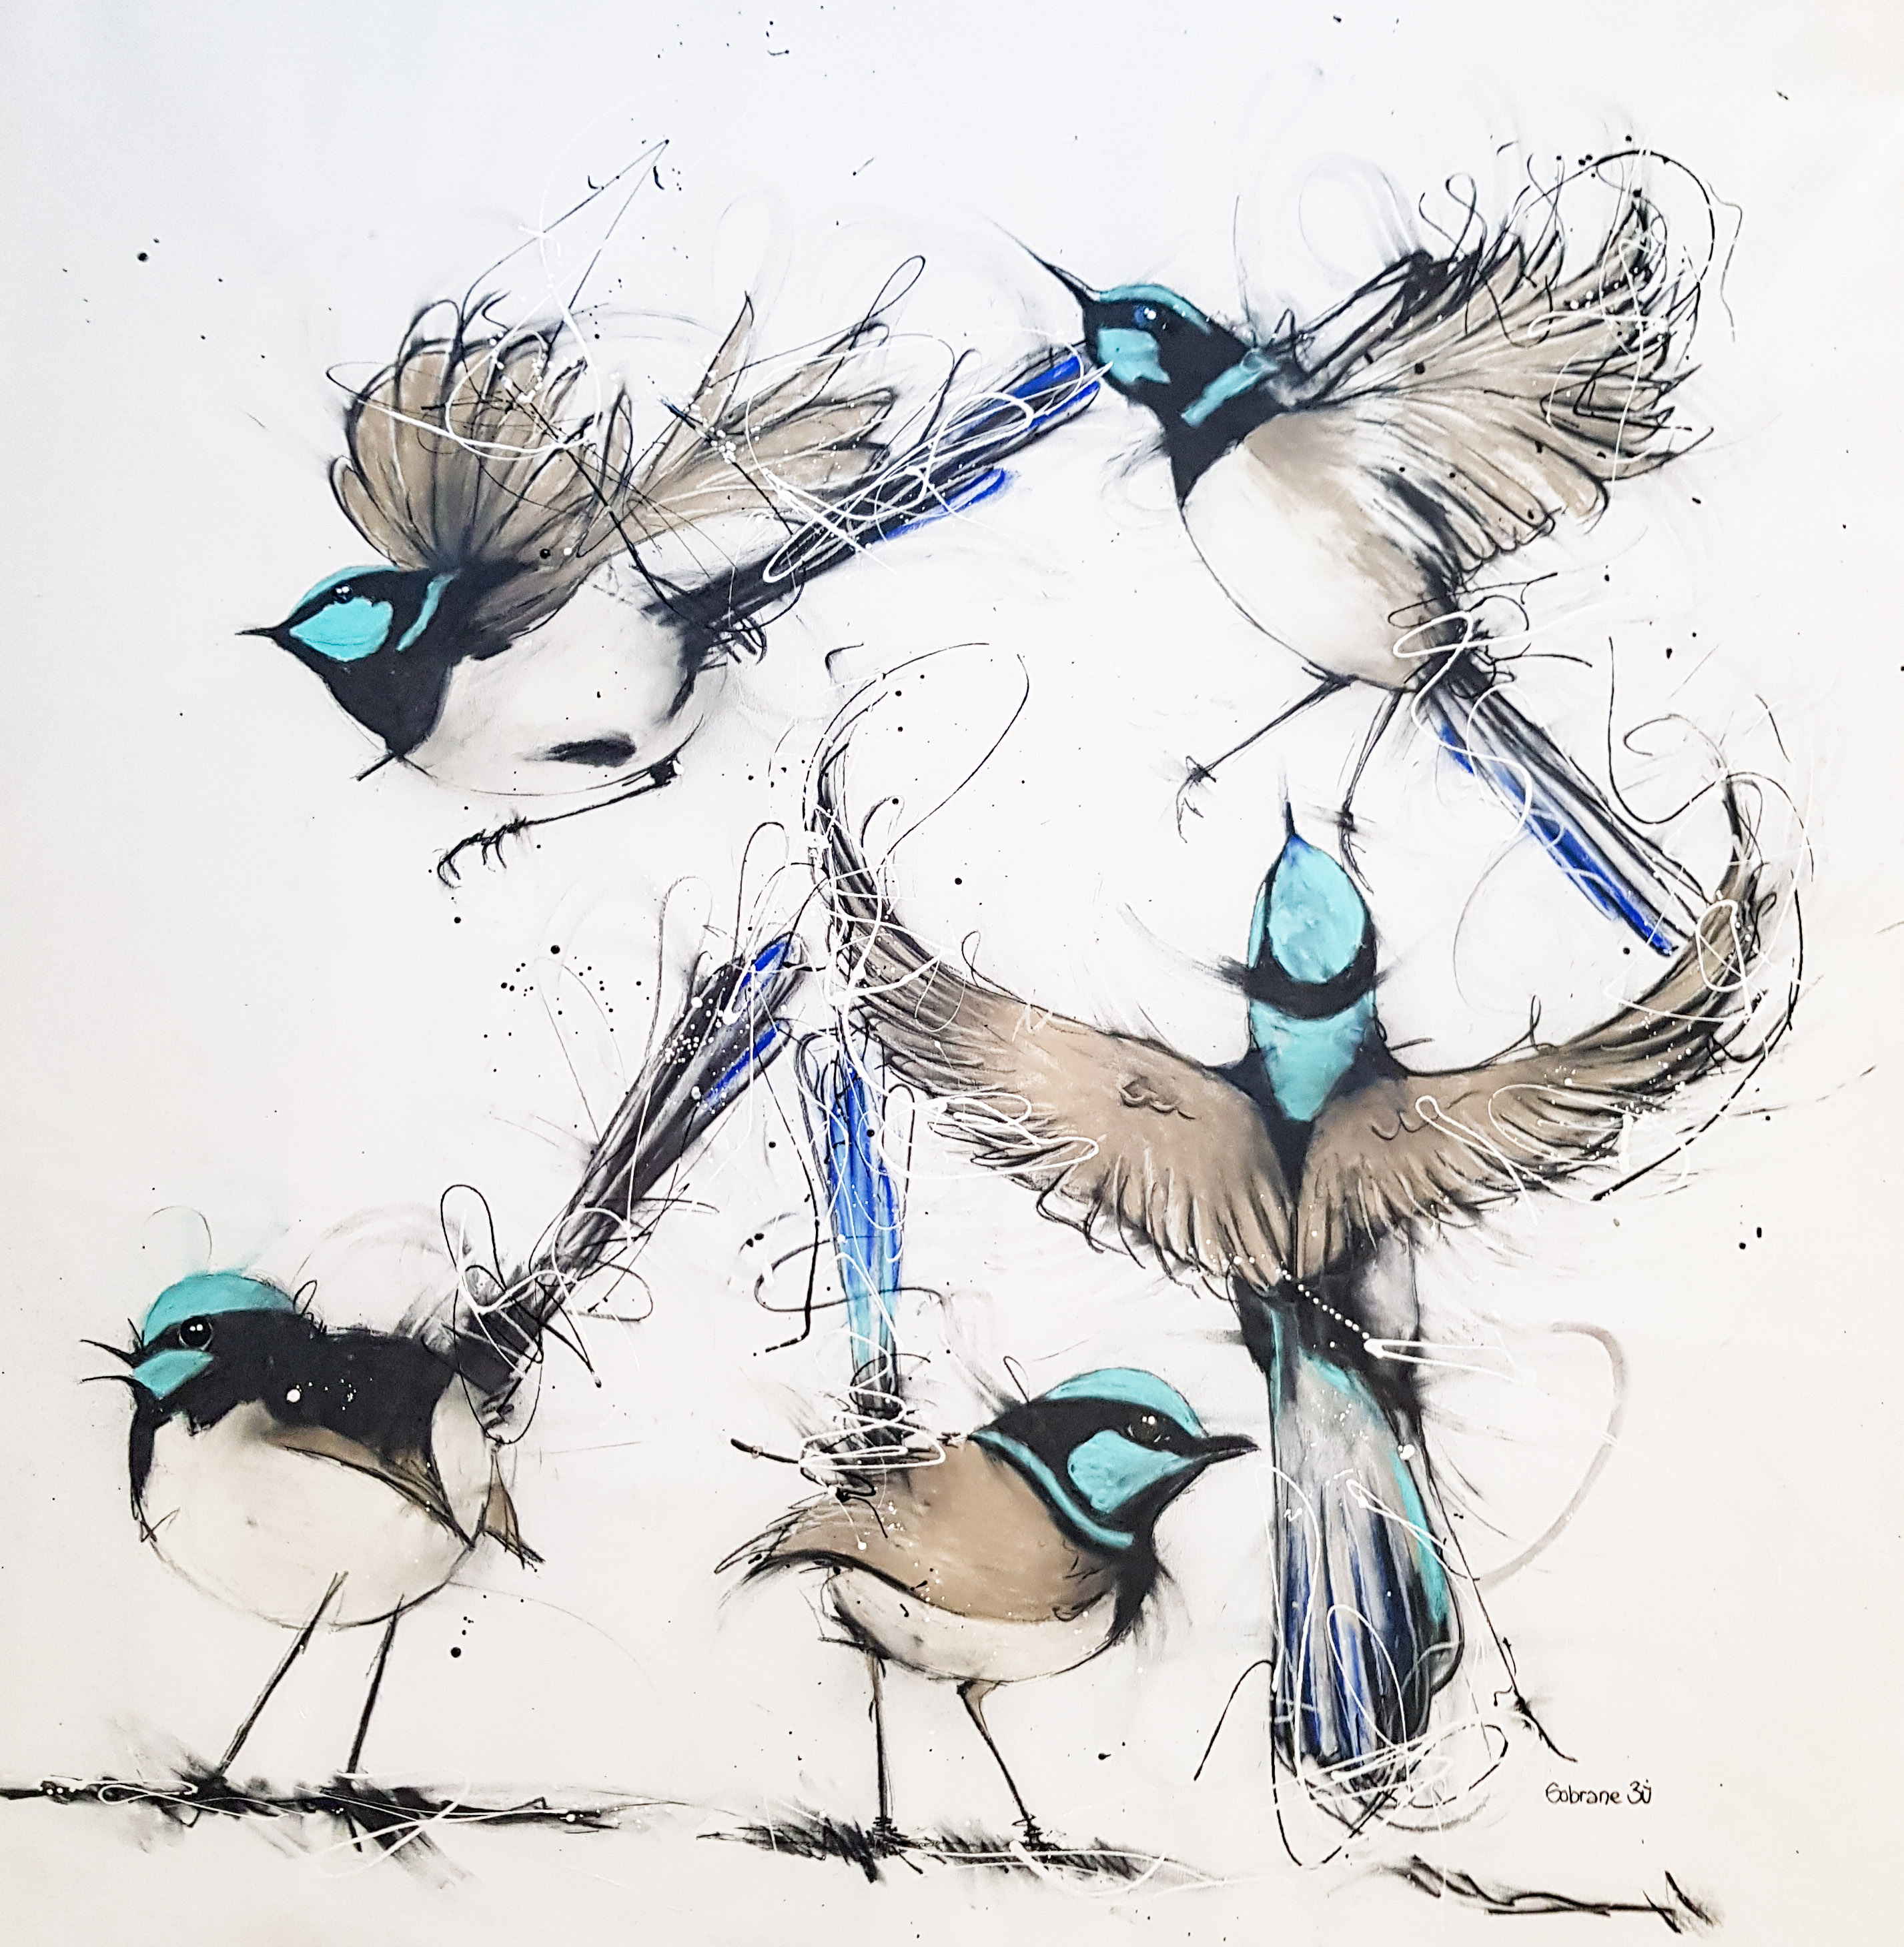 Flight of a little Wren Original Created in Sobrane's Whalebeach Studio, Sydney NSW Original artwork completed in pastels, spray-paint, charcoal and enamel.  Artwork is on canvas and framed  148 cm x 160 cm FREE SHIPPING ON ALL ORIGINALS WORLDWIDE